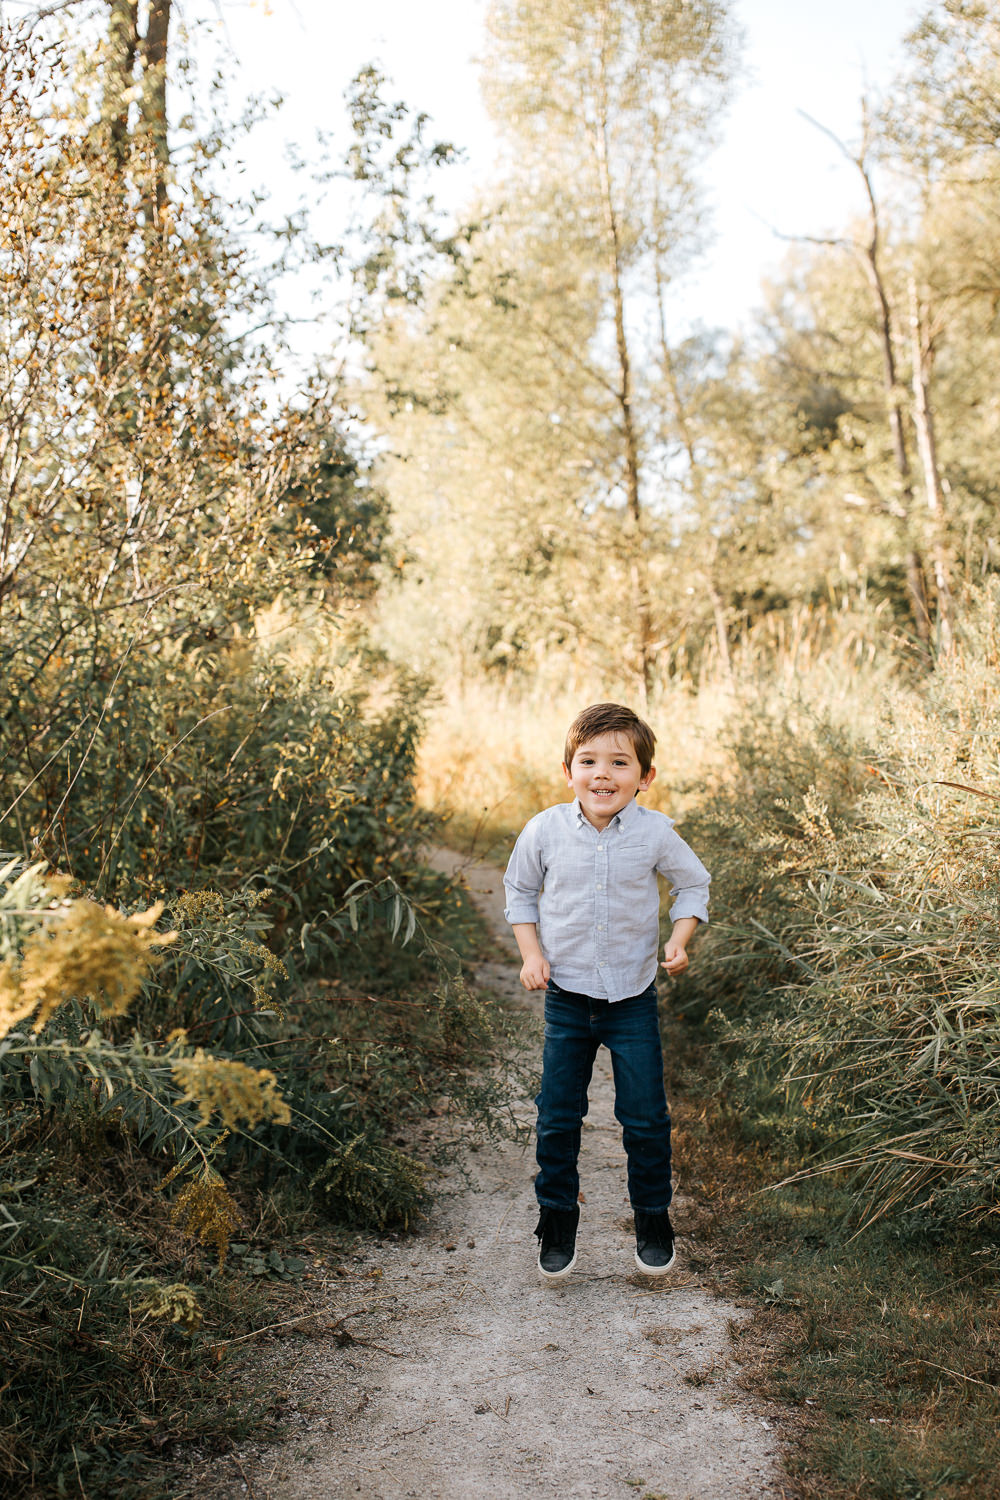 4 year old boy with dark hair and eyes wearing button down shirt jumping on path surrounded by tall grasses, looking at camera and smiling - GTA In-Home Photos